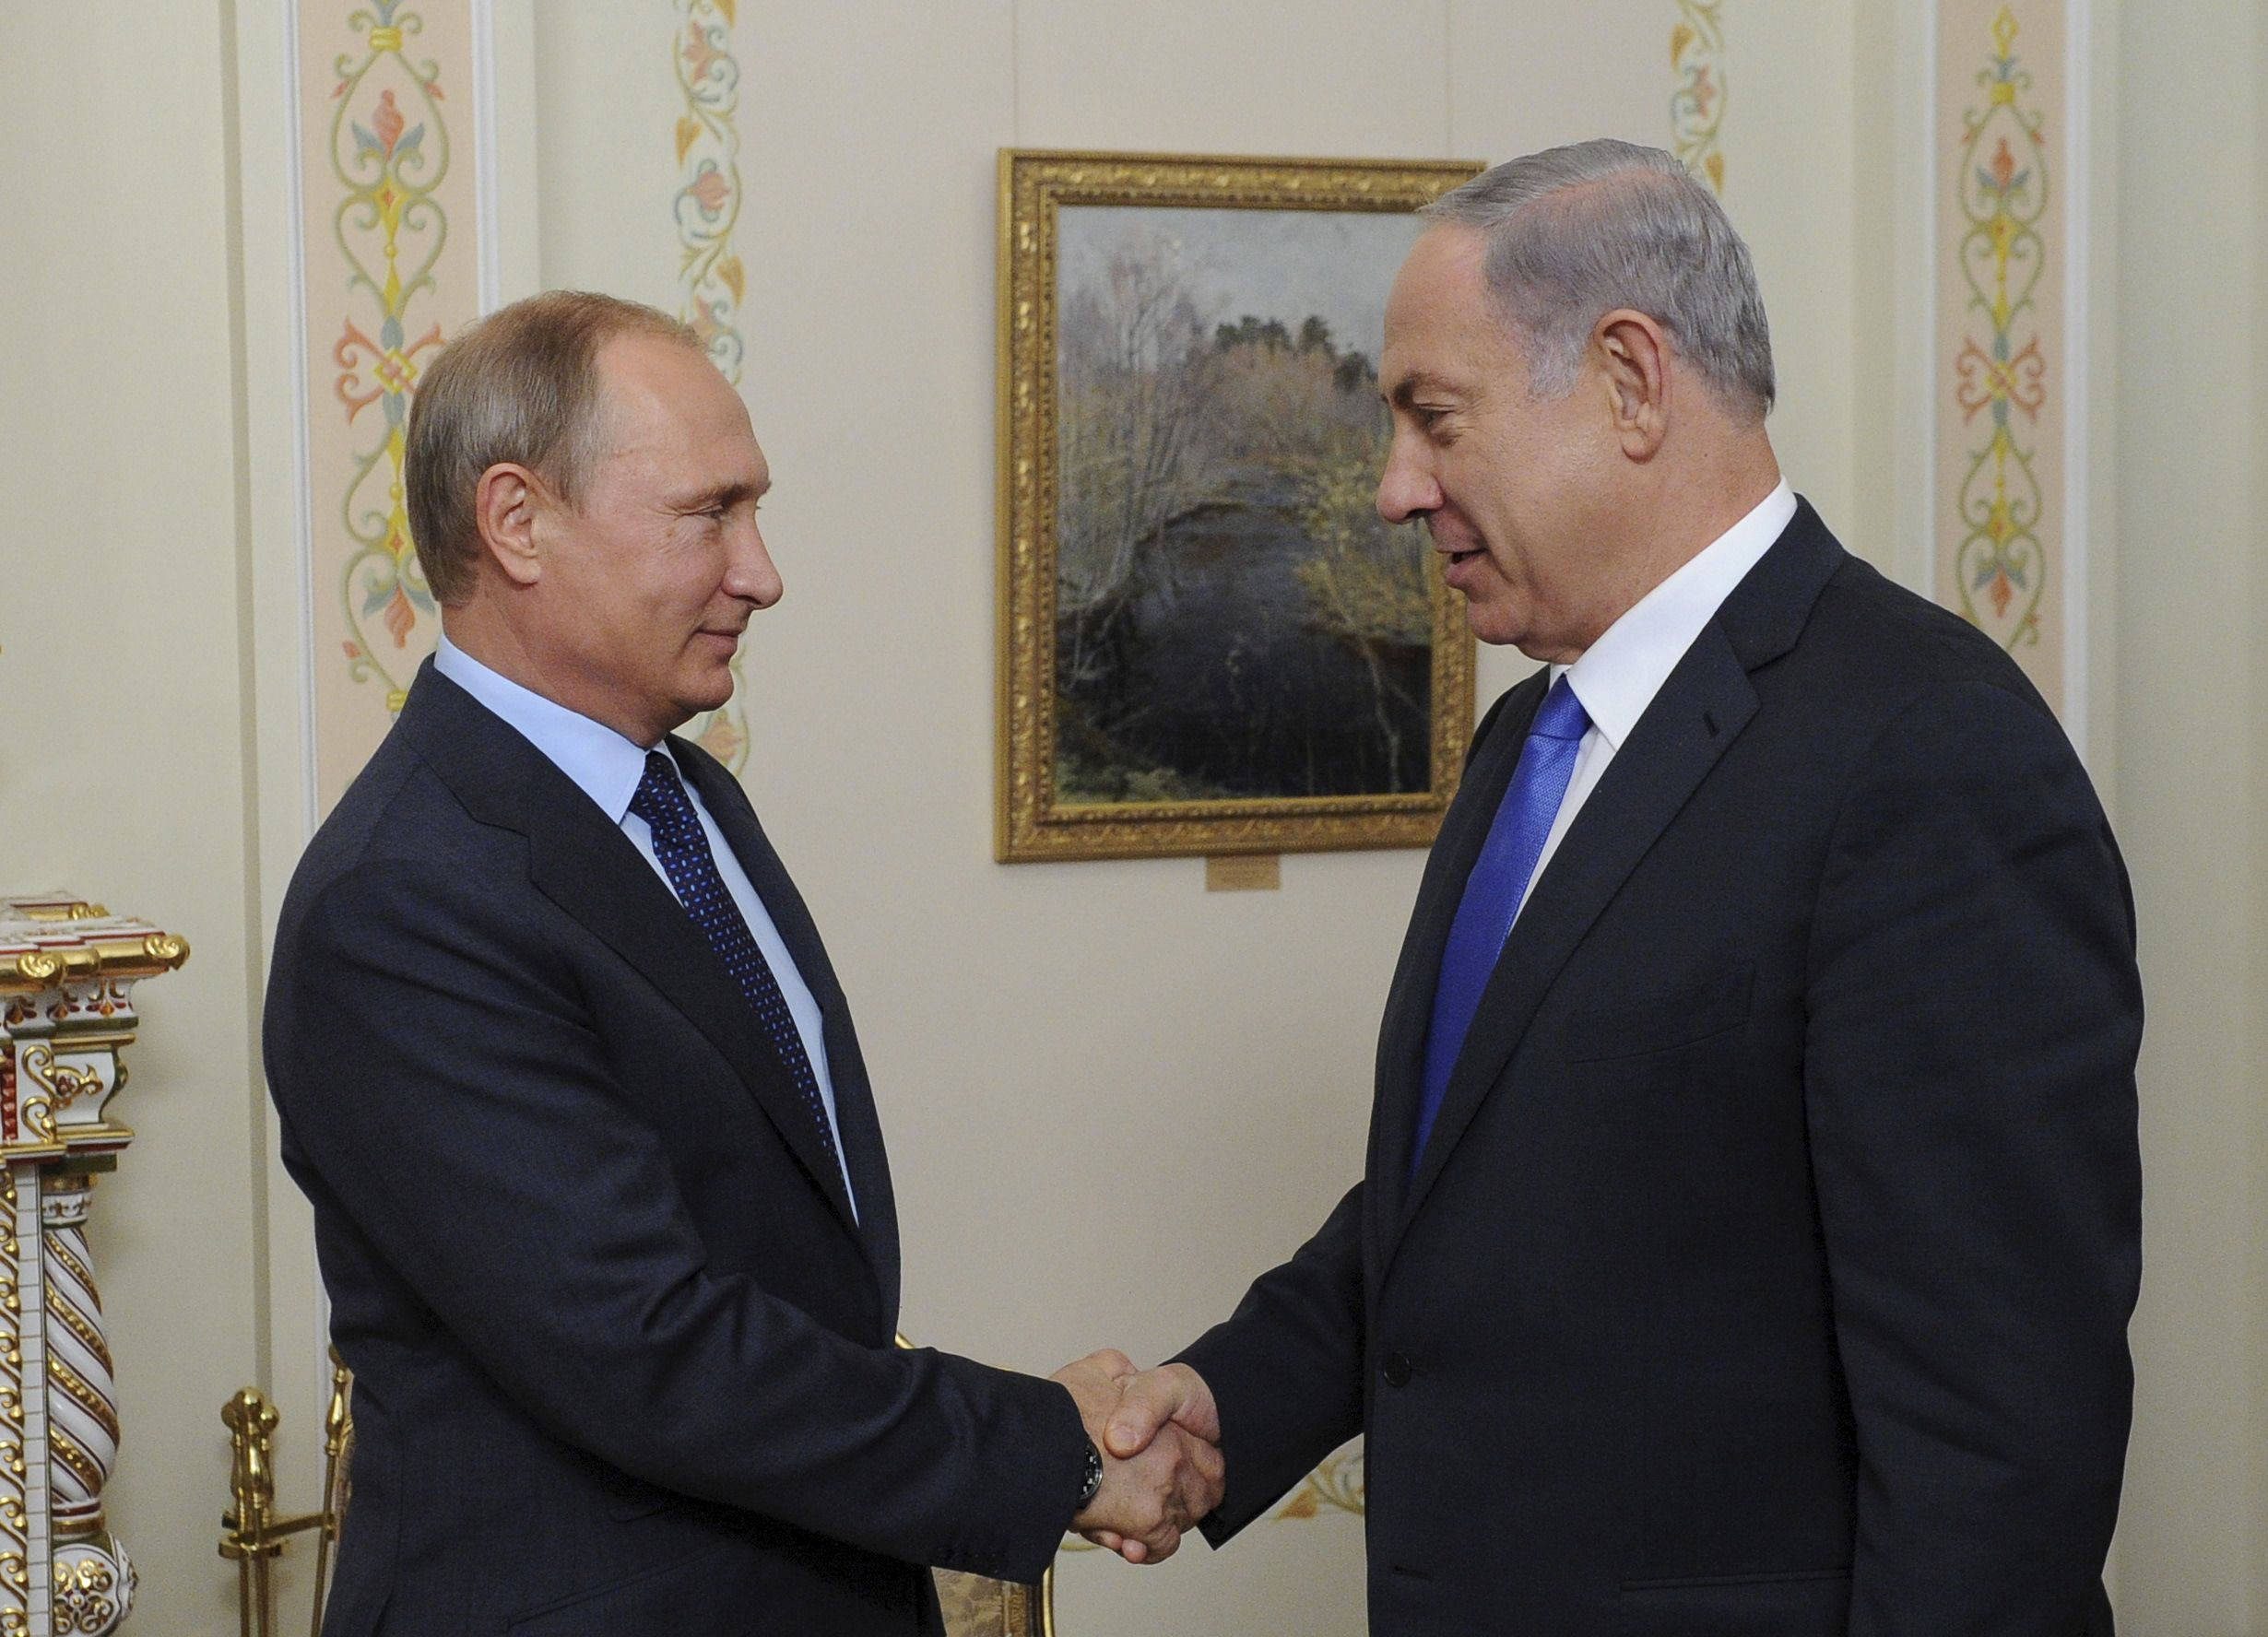 Russian President Vladimir Putin (L) and Israeli Prime Minister Benjamin Netanyahu shake hands during their meeting at the Novo-Ogaryovo state residence outside Moscow, Russia, September 21, 2015. Netanyahu said his visit to Moscow on Monday was aimed at preventing clashes between Russian and Israeli military forces in the Middle East. REUTERS/Mikhail Klimentyev/RIA Novosti/Pool ATTENTION EDITORS - THIS IMAGE HAS BEEN SUPPLIED BY A THIRD PARTY. IT IS DISTRIBUTED, EXACTLY AS RECEIVED BY REUTERS, AS A SERVICE TO CLIENTS. - RTS24WH